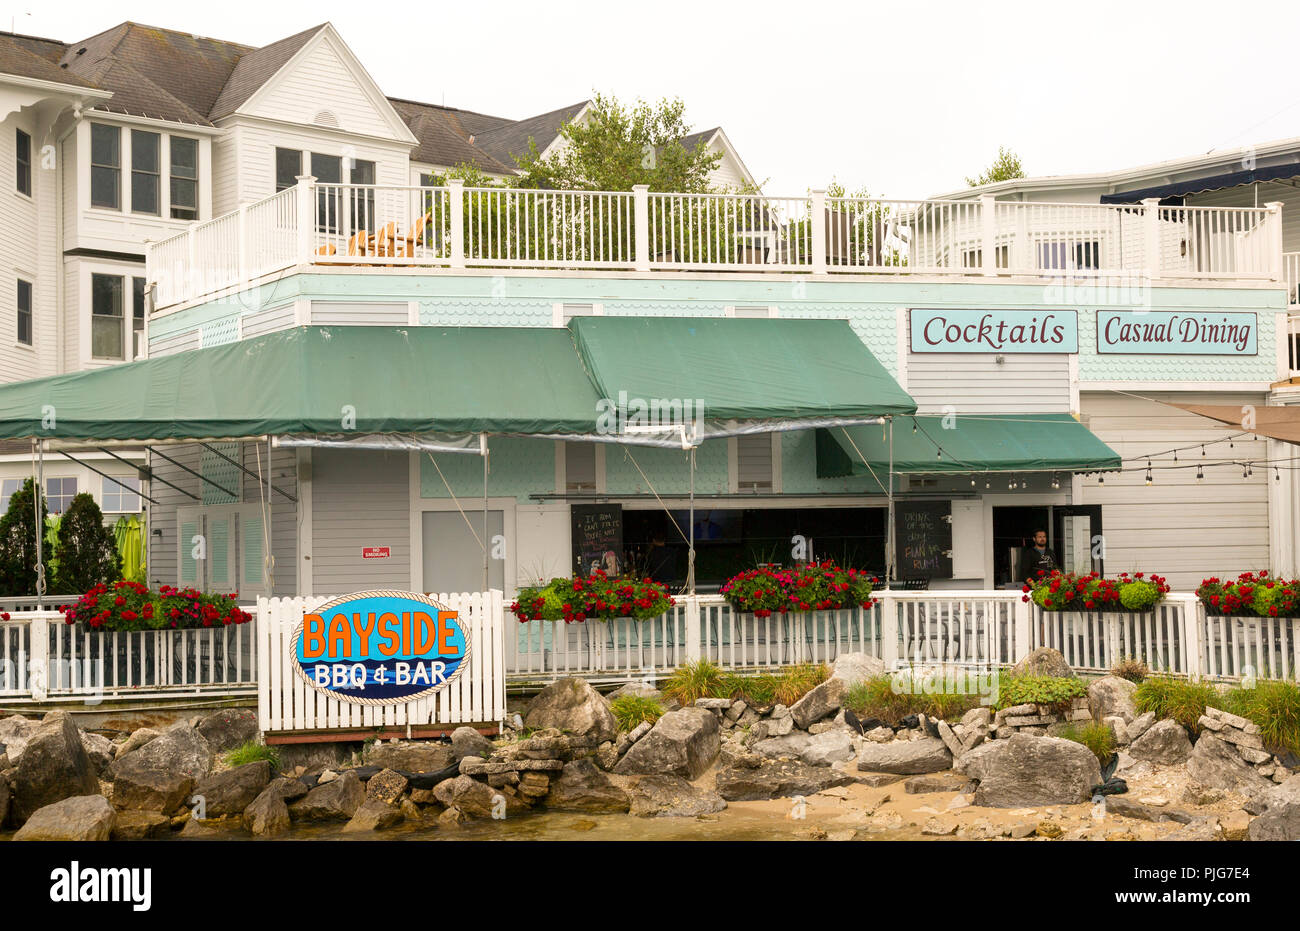 Casual dining, barbecue restaurant on the historic vacation town of Mackinac Island in Michigan. - Stock Image